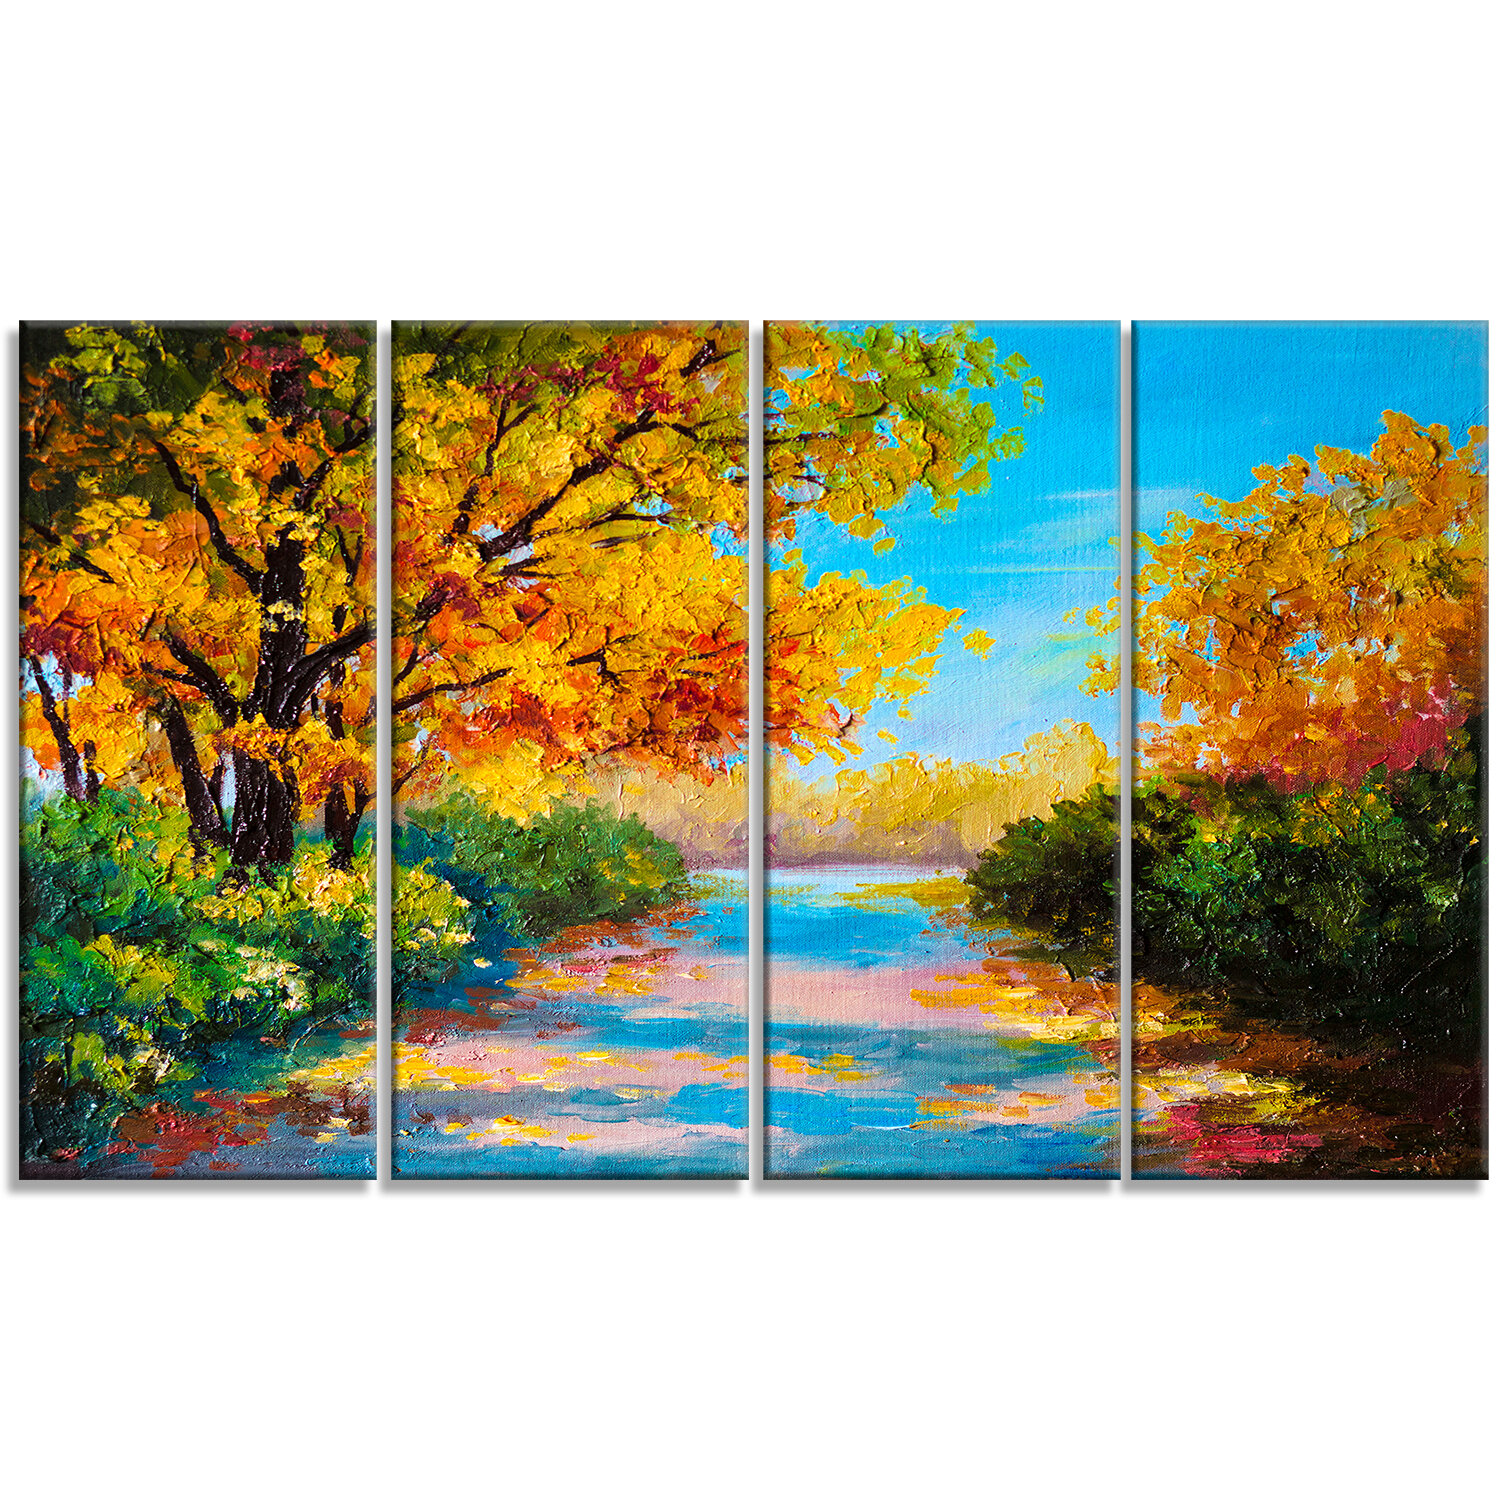 Designart Autumn Forest With Colorful River Landscape 4 Piece Painting Print On Wrapped Canvas Set Wayfair